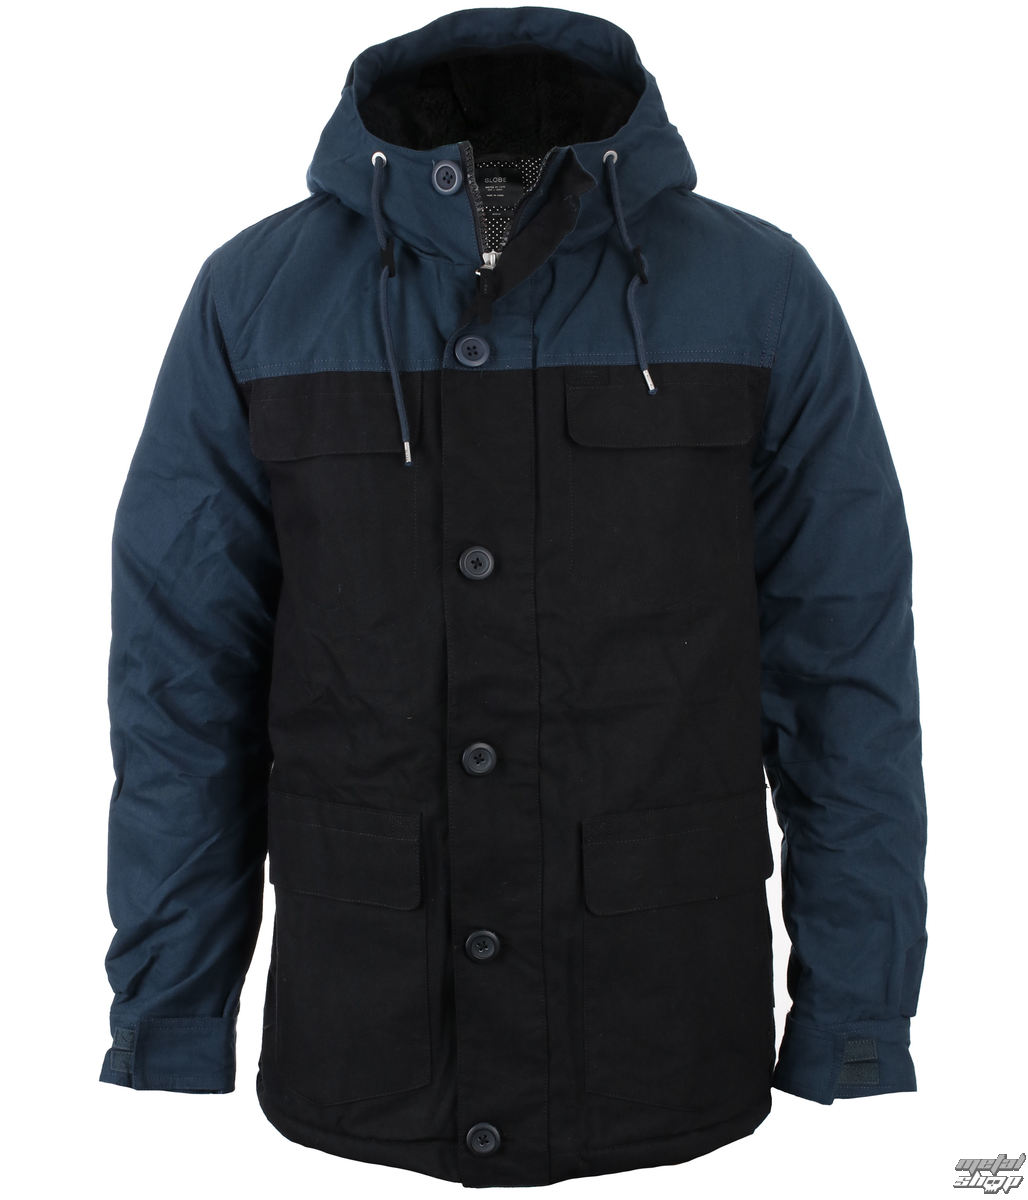 bunda zimní - Goodstock Blocked Parka - GLOBE - GB01637014-BLK